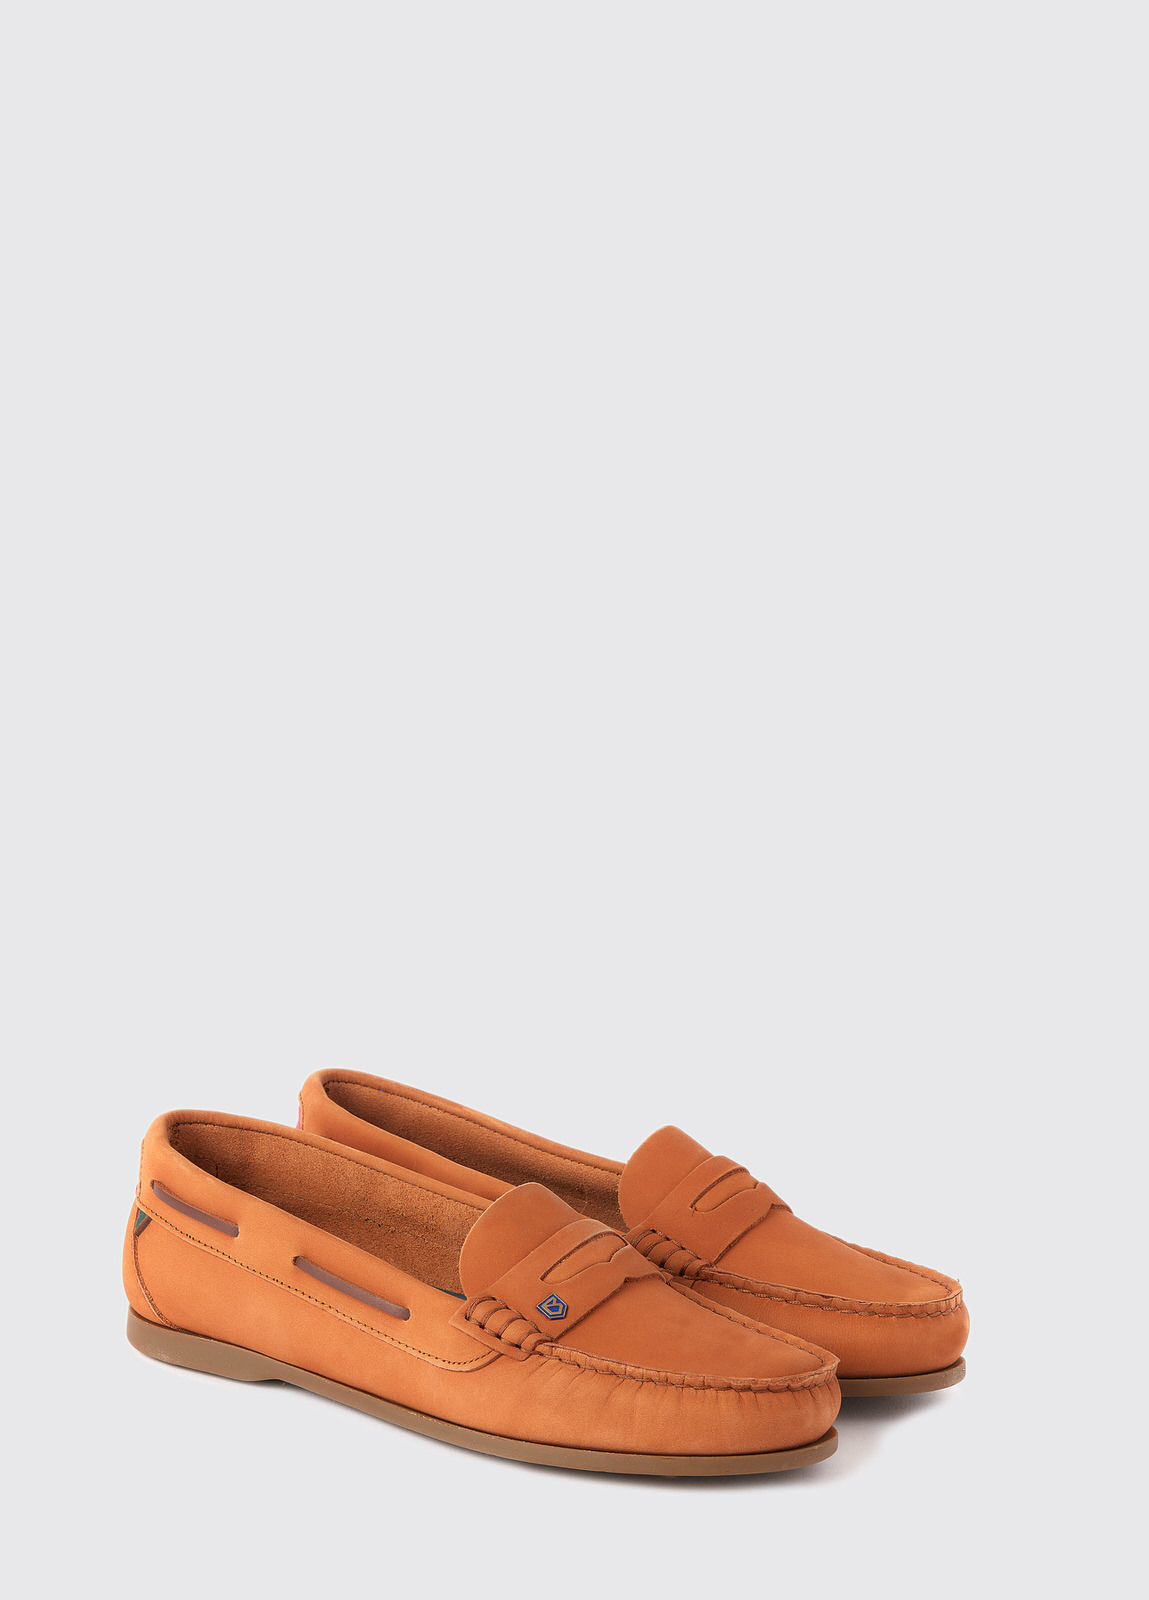 Belize Deck Shoe - Caramel